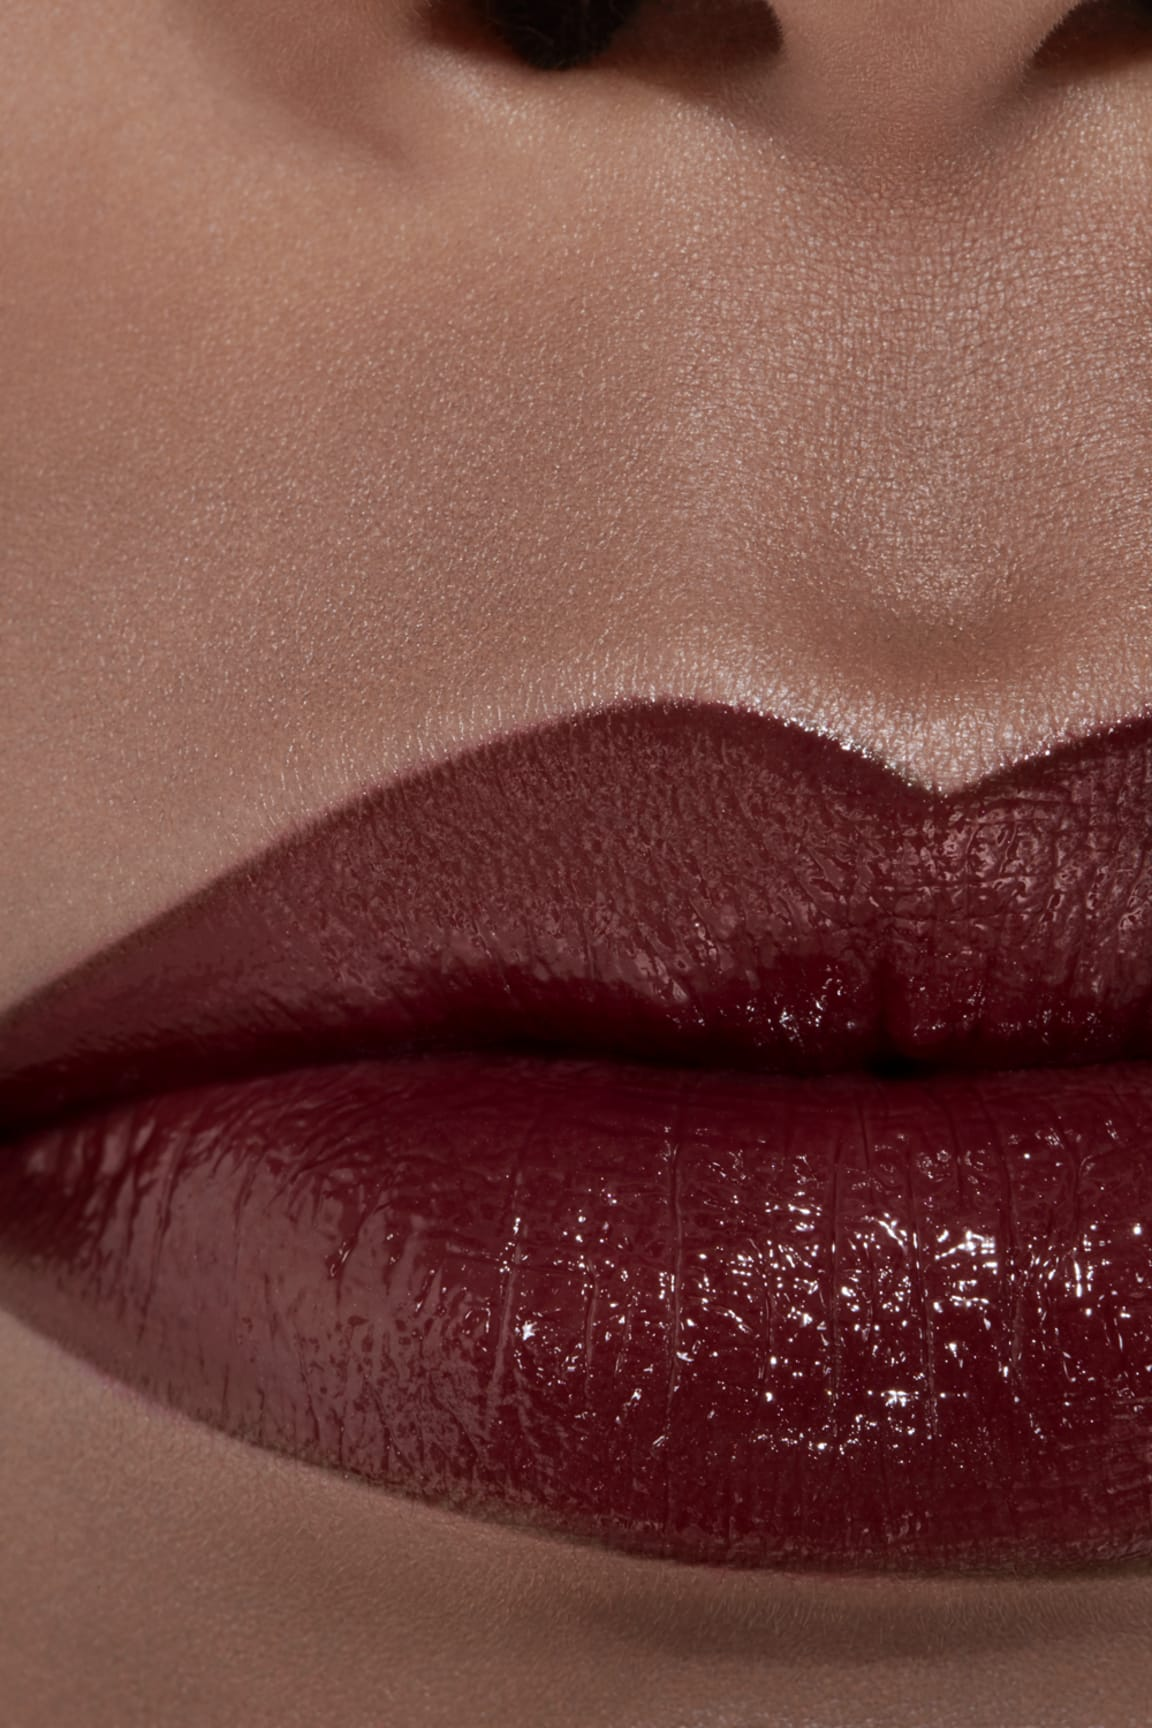 Application makeup visual 2 - ROUGE COCO 494 - ATTRACTION